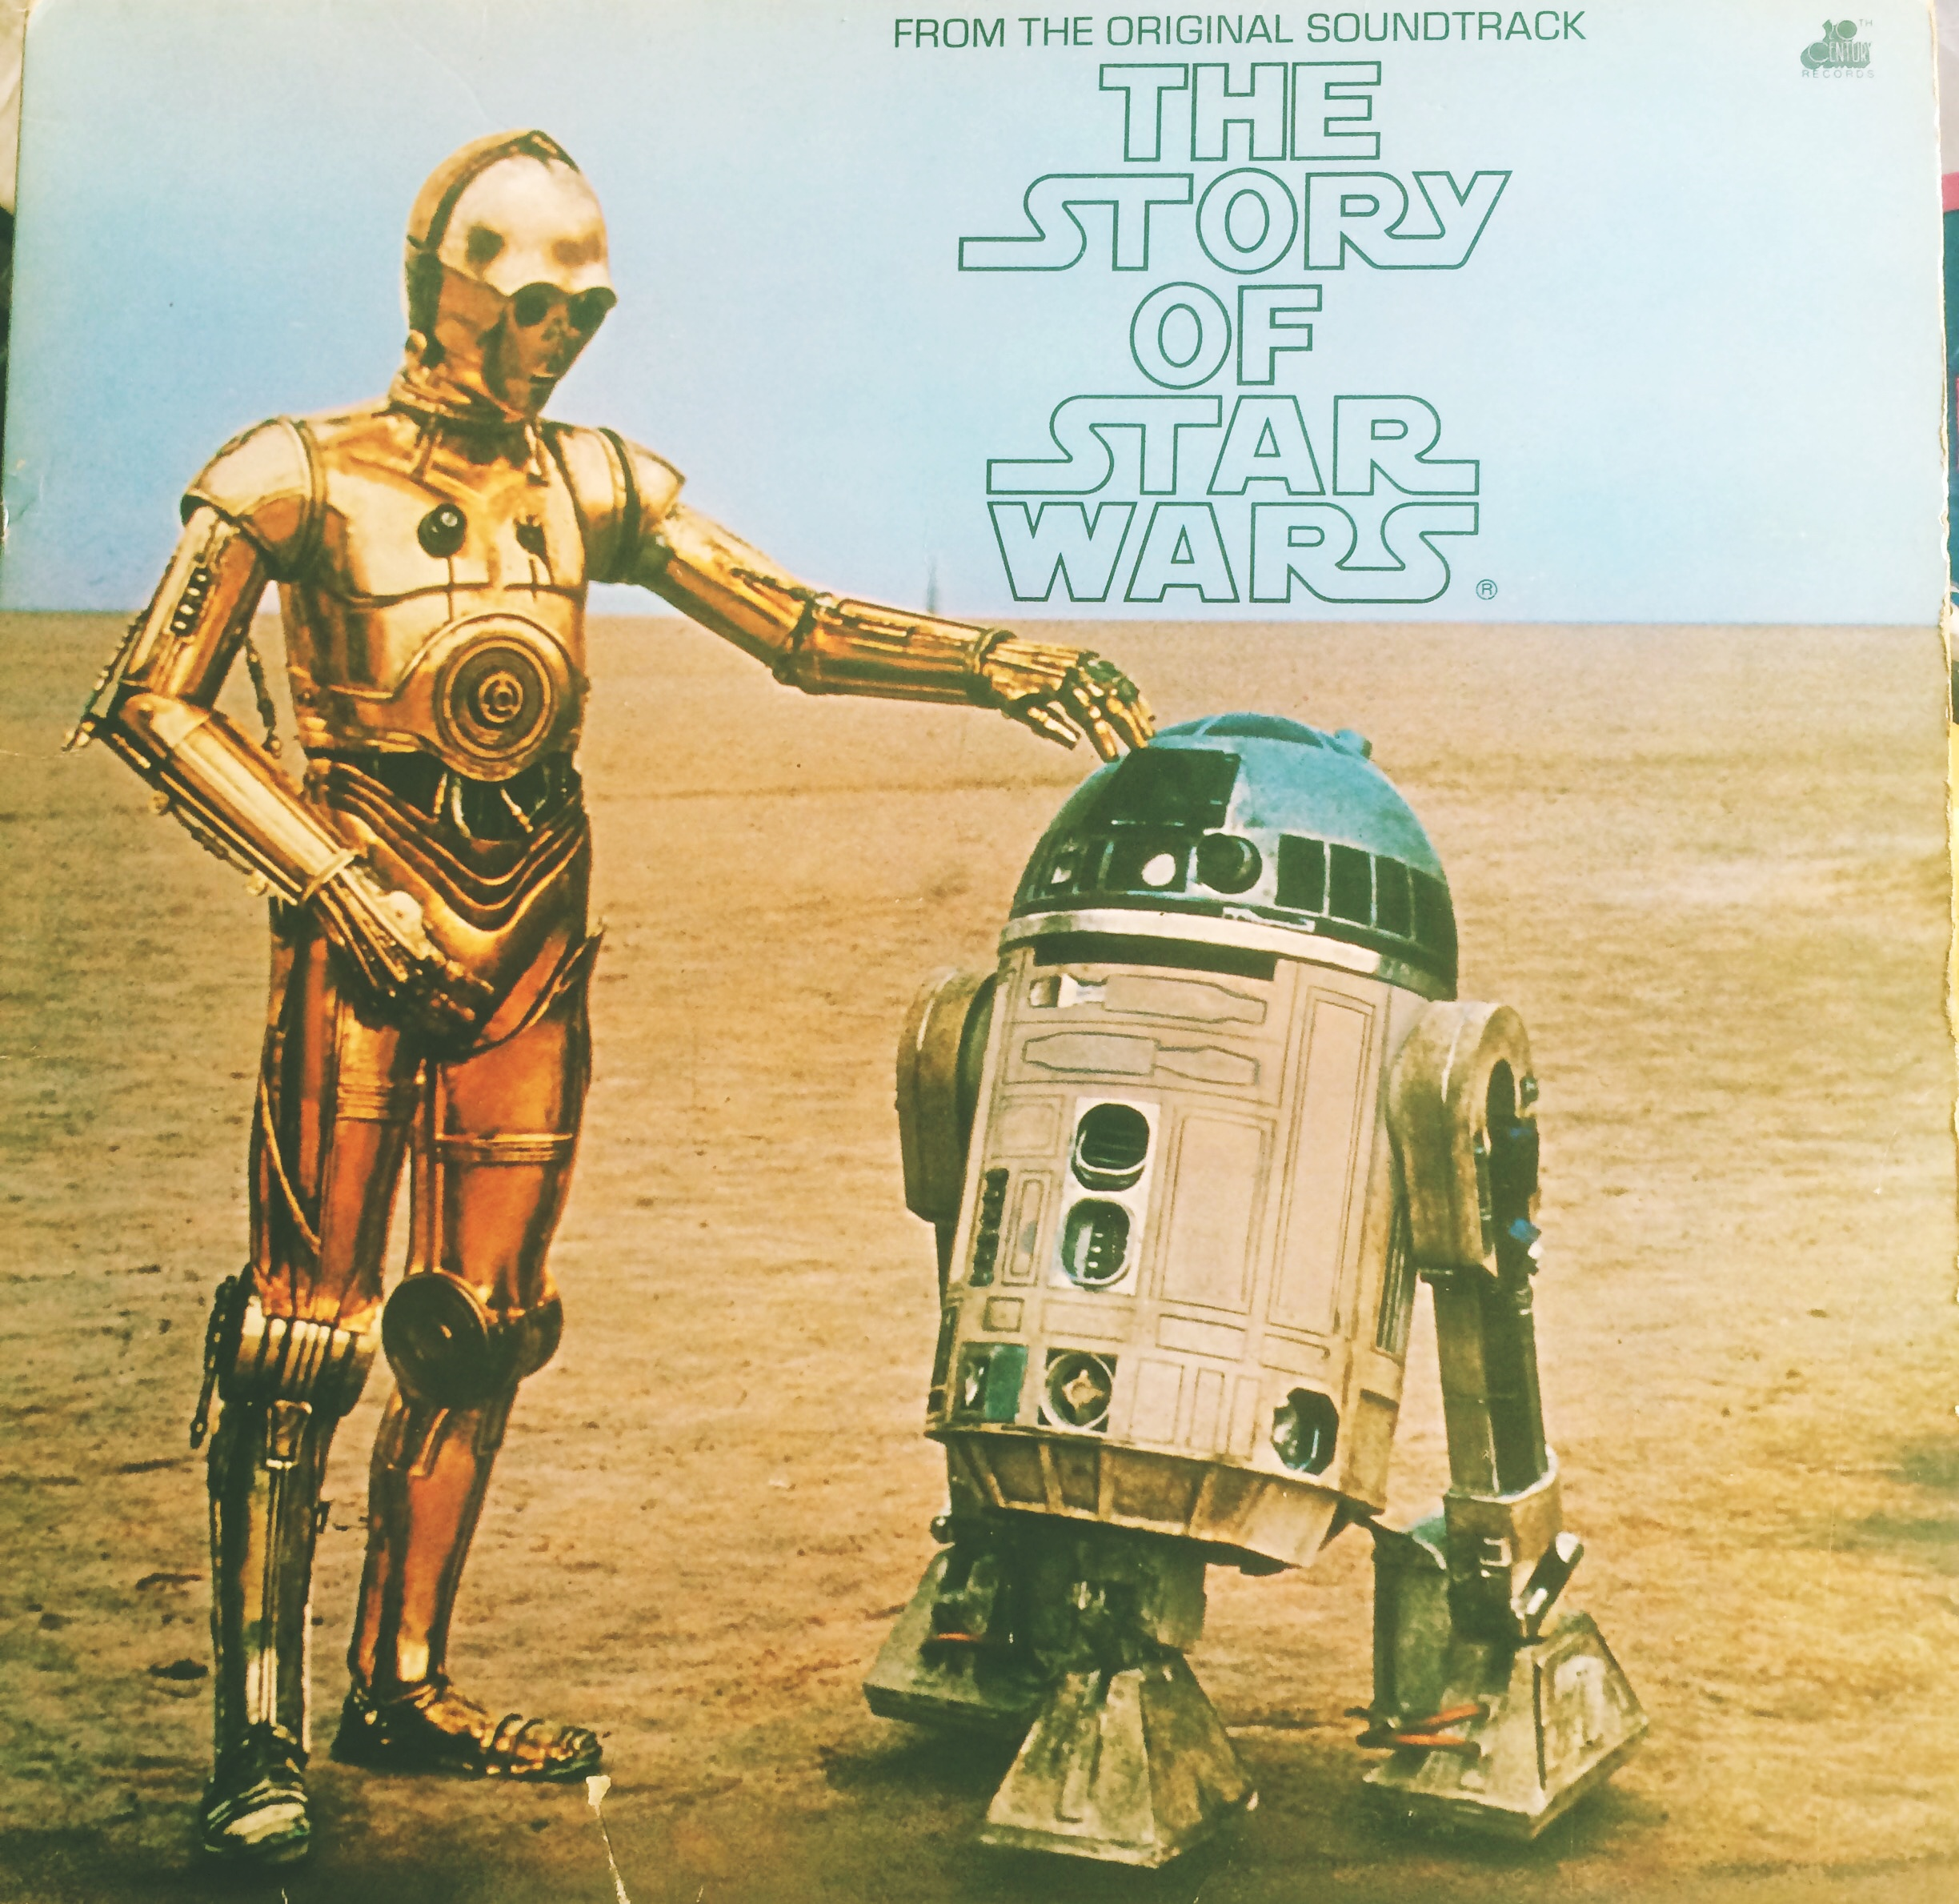 A picture of my Star Wars story album. Not the musical soundtrack, the film on vinyl, to listen to.